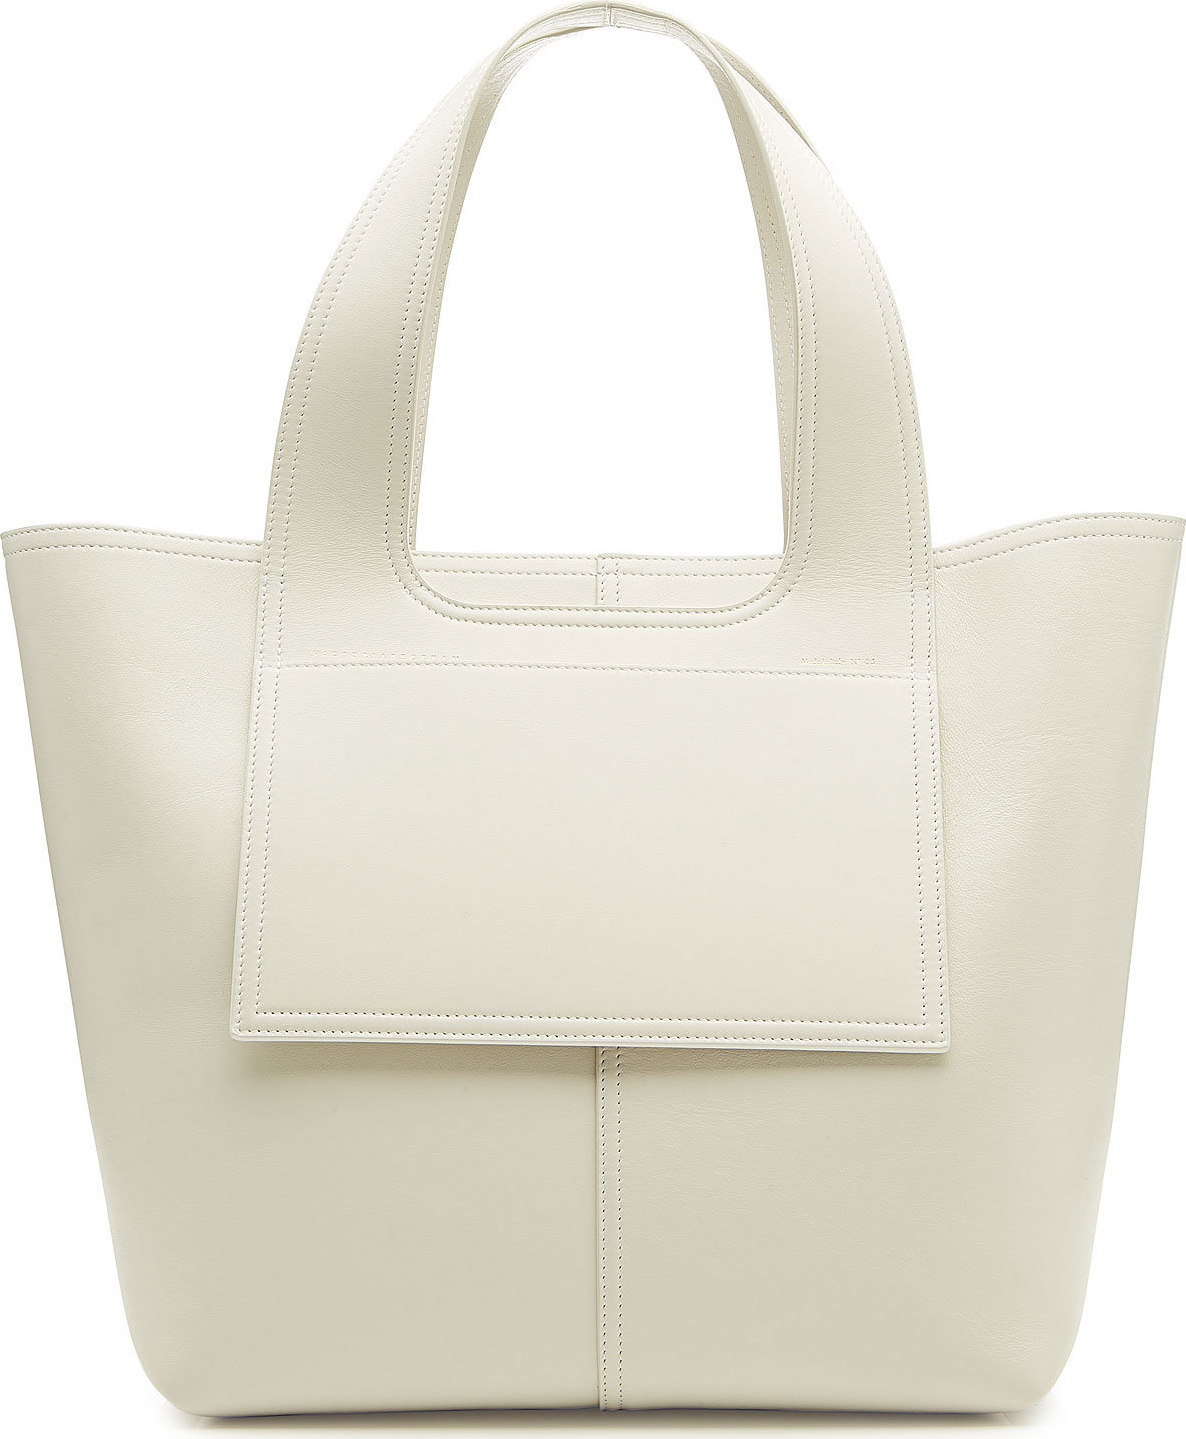 Victoria Beckham - Apron Leather Tote